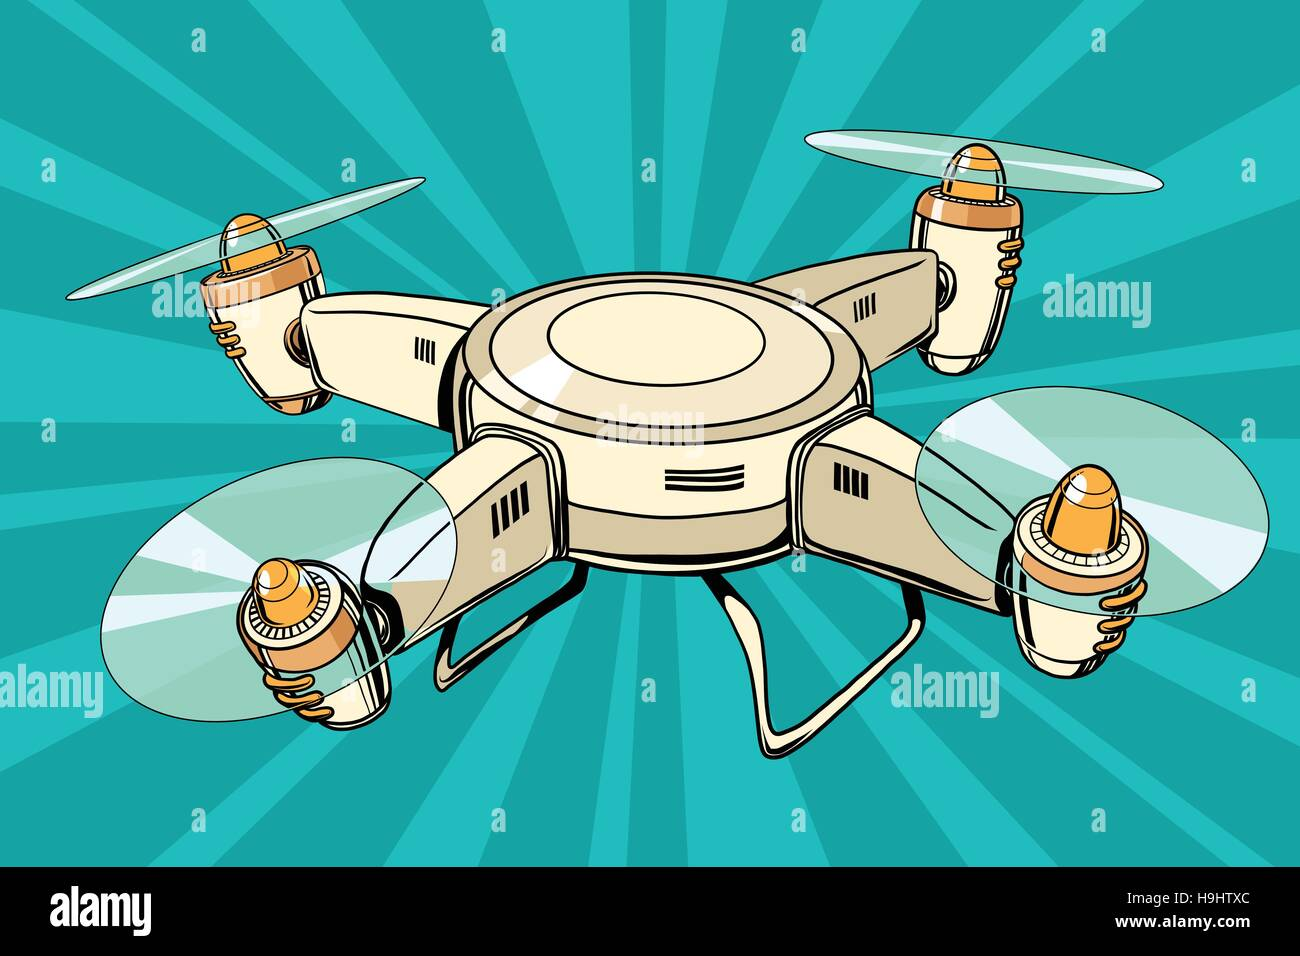 quadcopter toy aircraft pop art illustration, Drone flying - Stock Vector